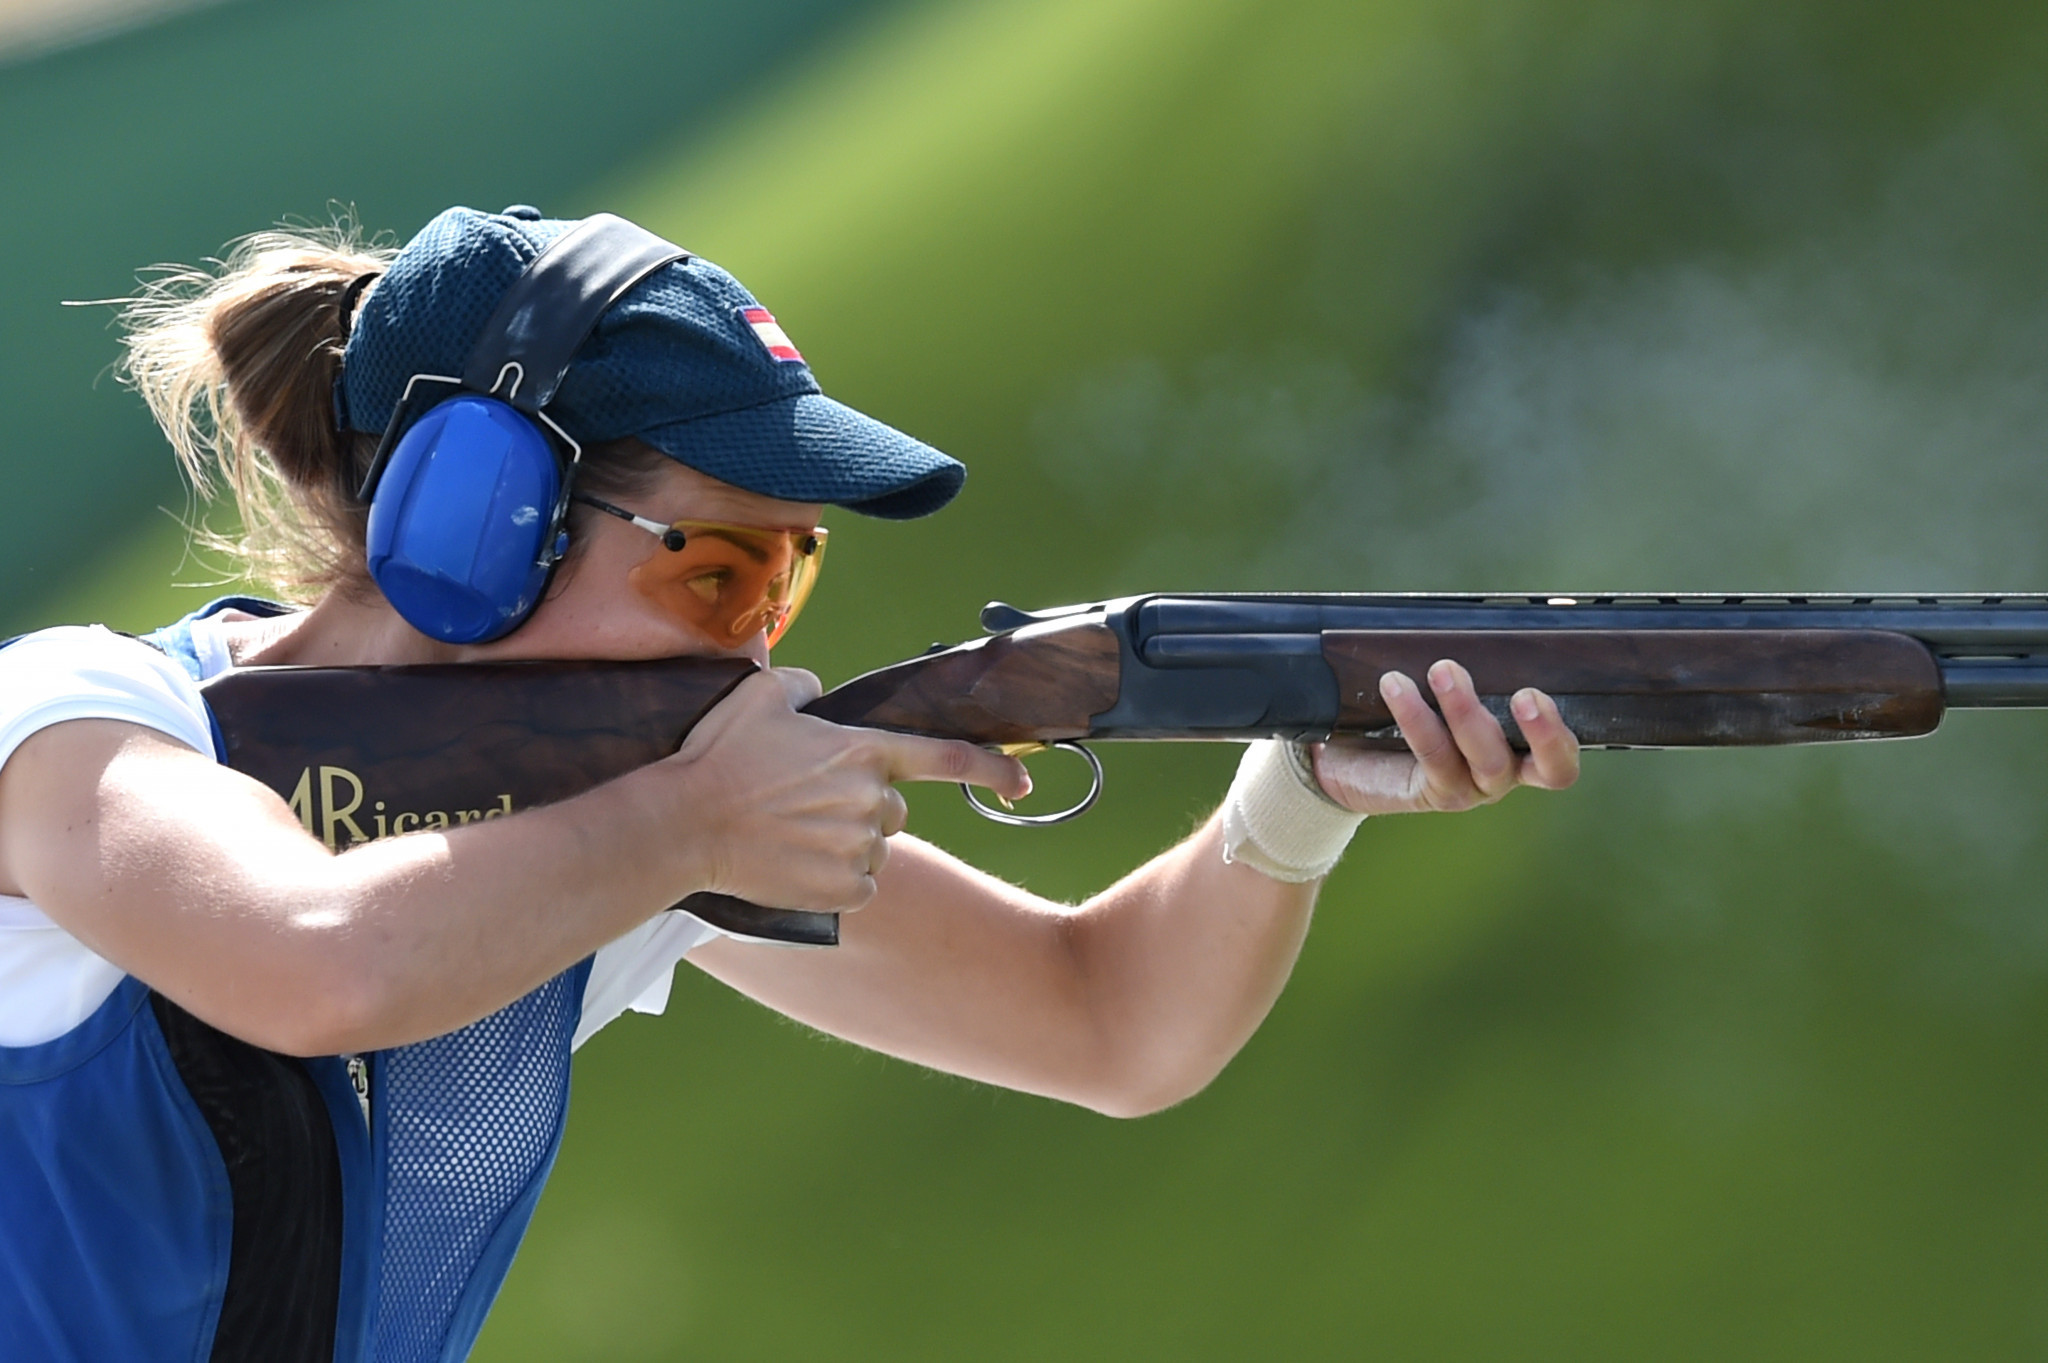 Fátima Gálvez won the women's trap at the ISSF World Cup in Cairo ©Getty Images